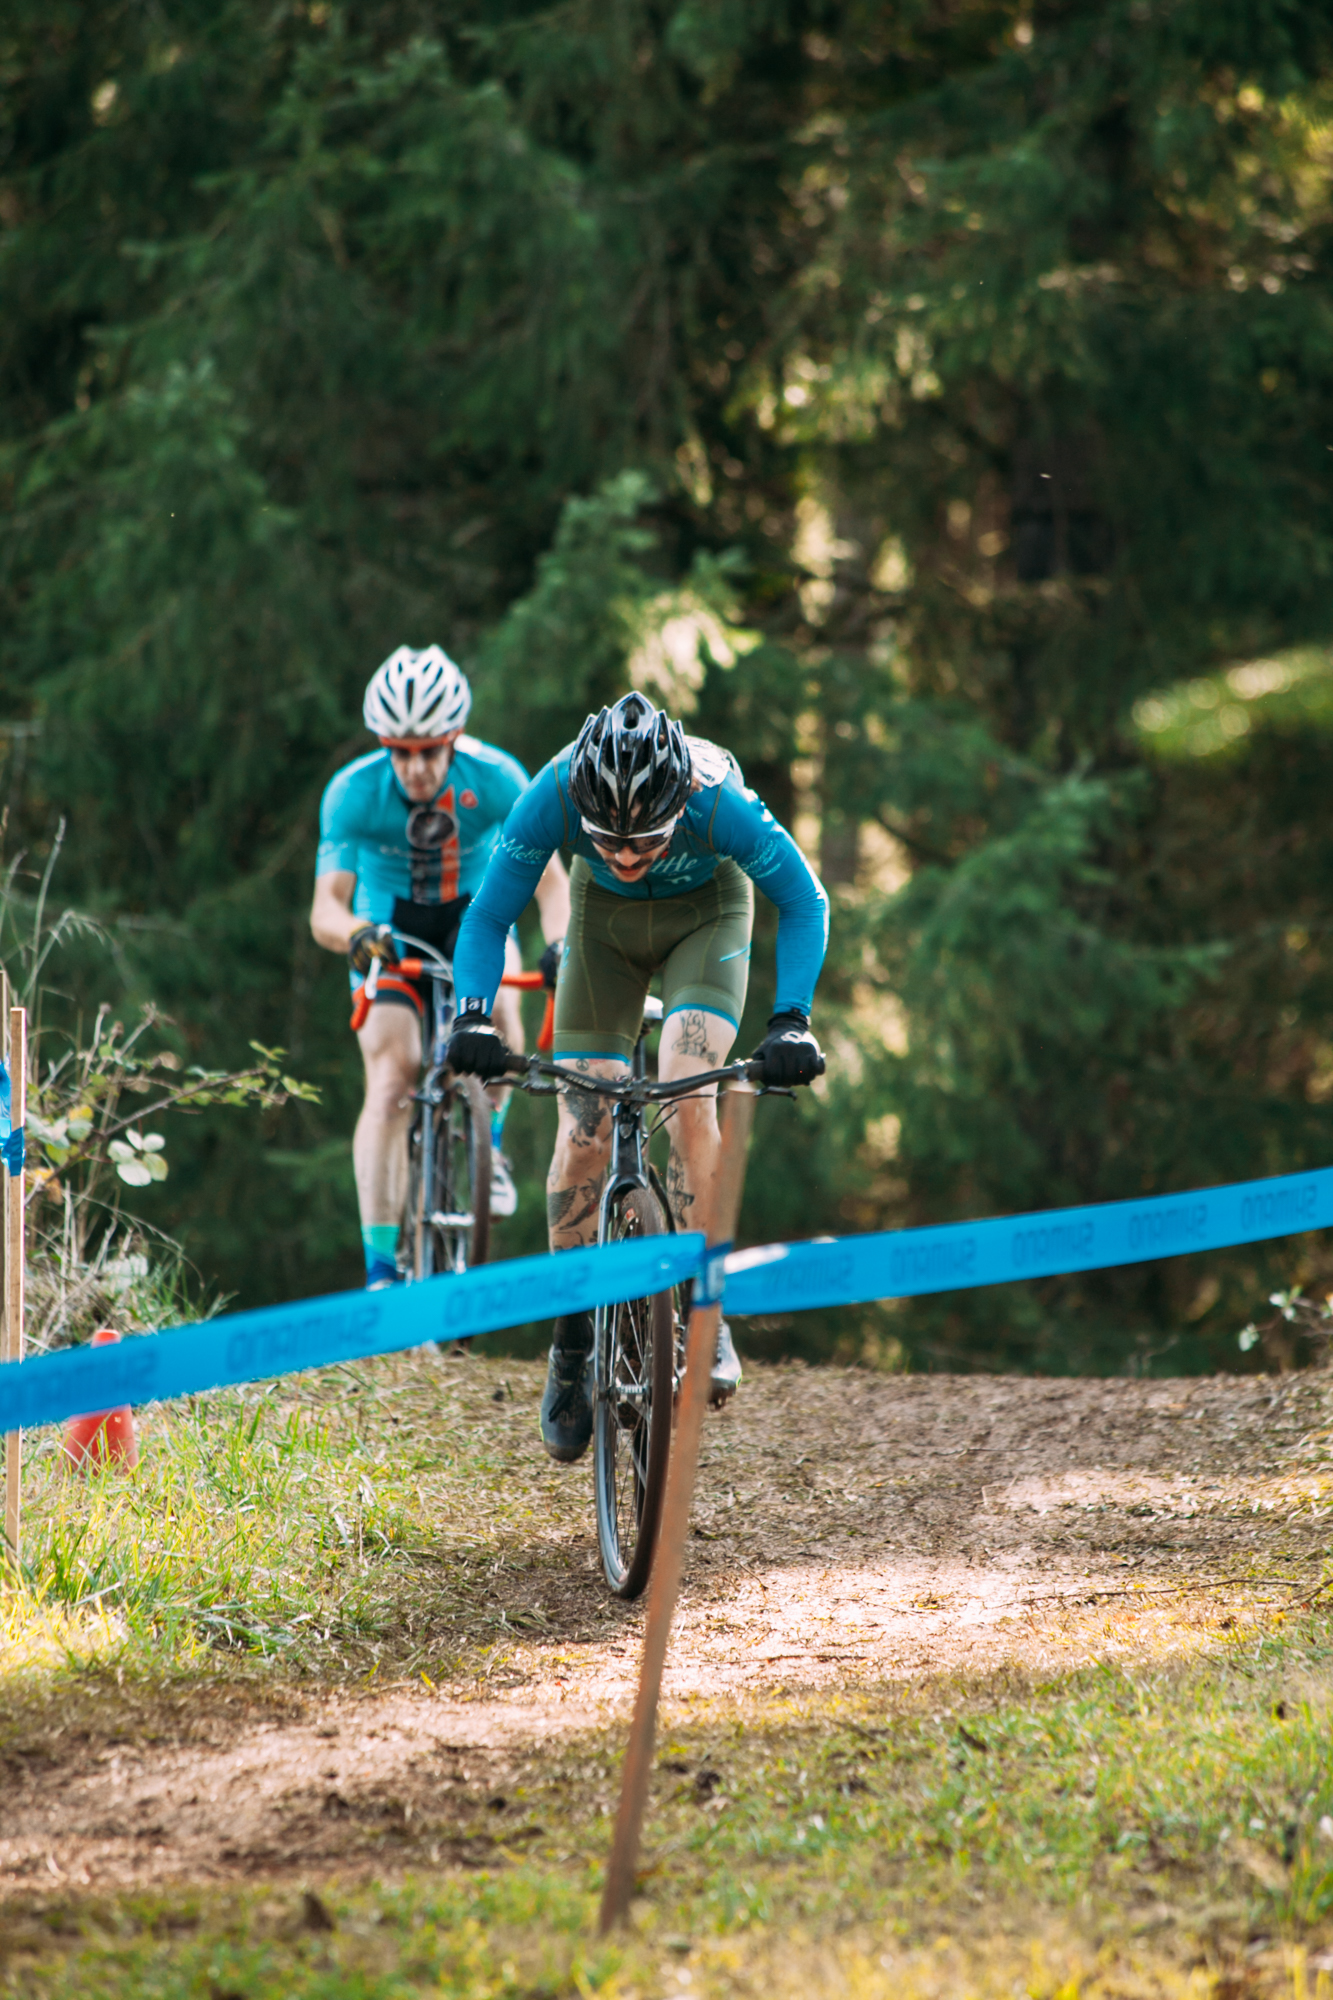 Cyclocross18_CCCX_RainierHS-156-mettlecycling.jpg